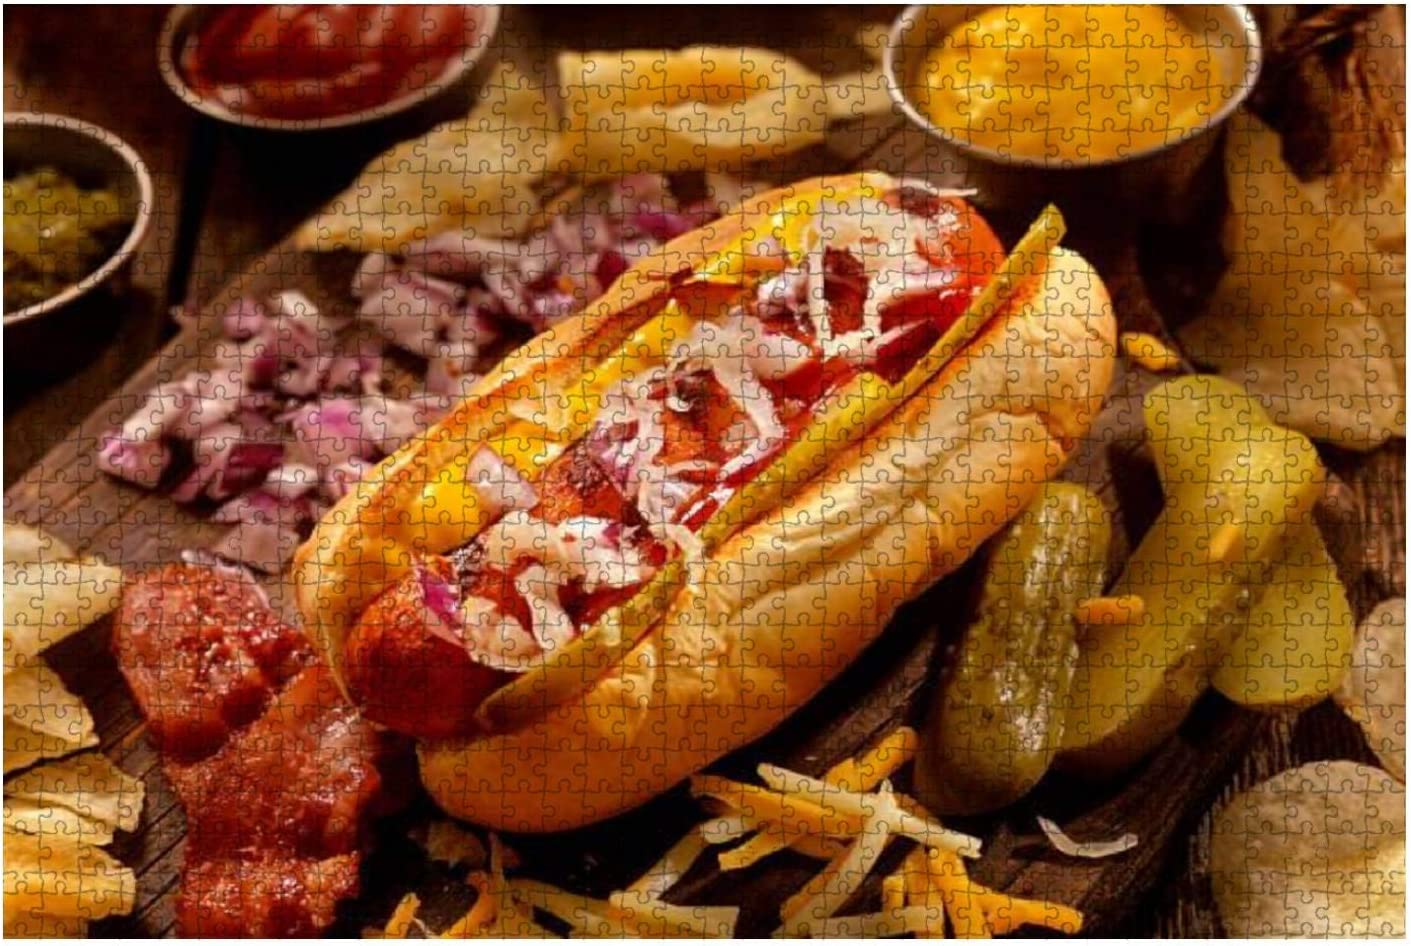 Wooden Puzzle 1000 Pieces hot Dog with All The fixings Junk Food Stock Pictures Royalty Free Jigsaw Puzzles for Children or Adults Educational Toys Decompression Game